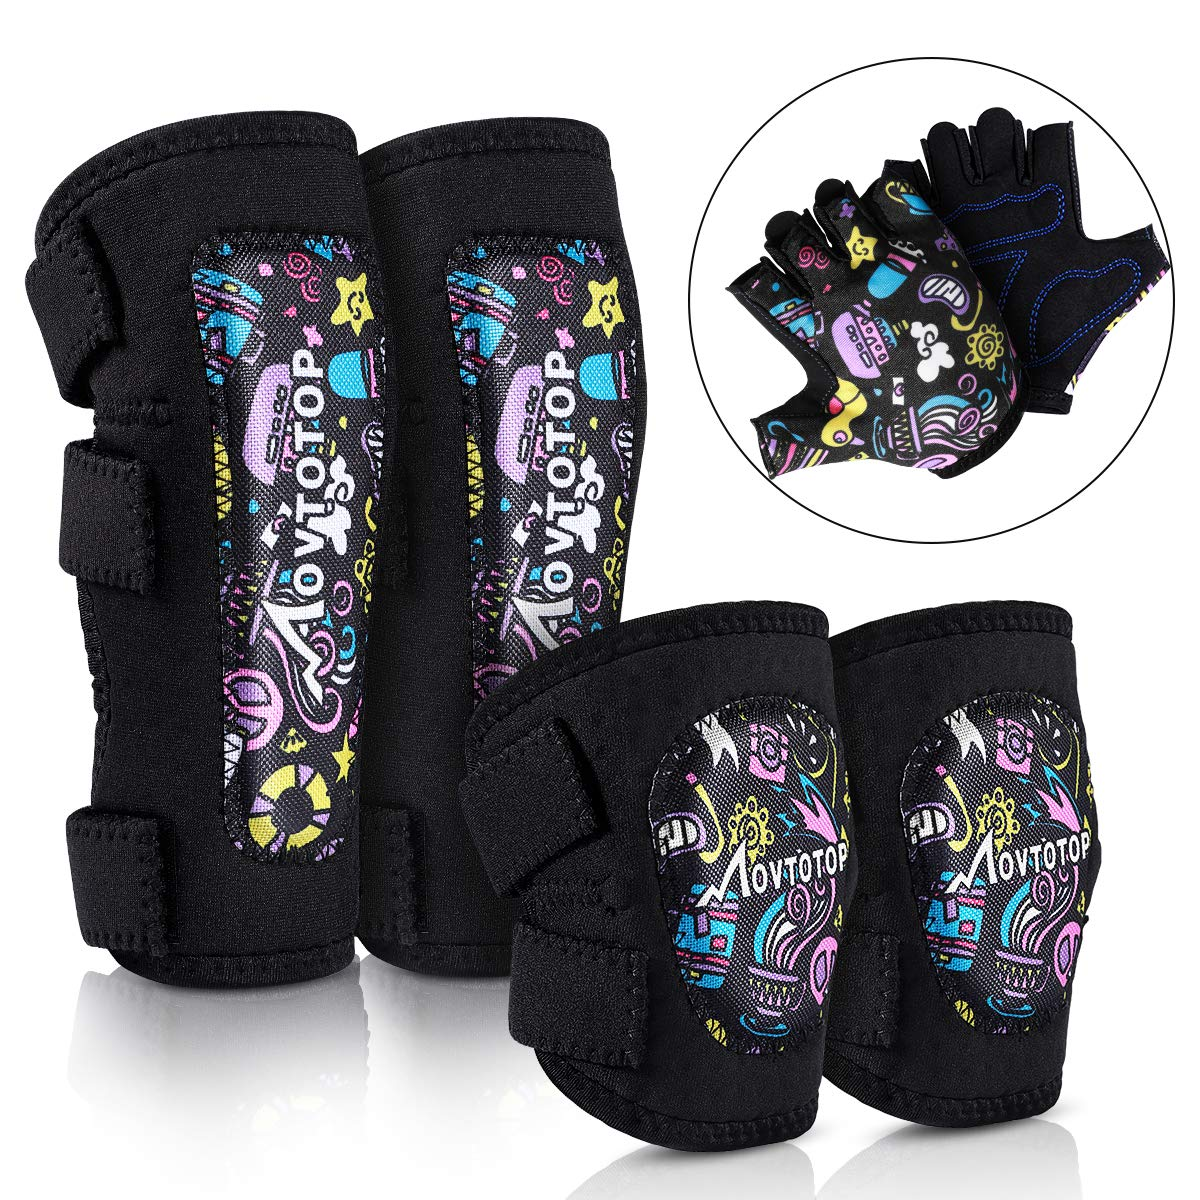 MOVTOTOP Kids Knee and Elbow Pads with Bike Gloves Toddler Protective Gear Set for Skateboard, Roller-Skating, Bike Knee Pads for Boys Girls Children L/XL